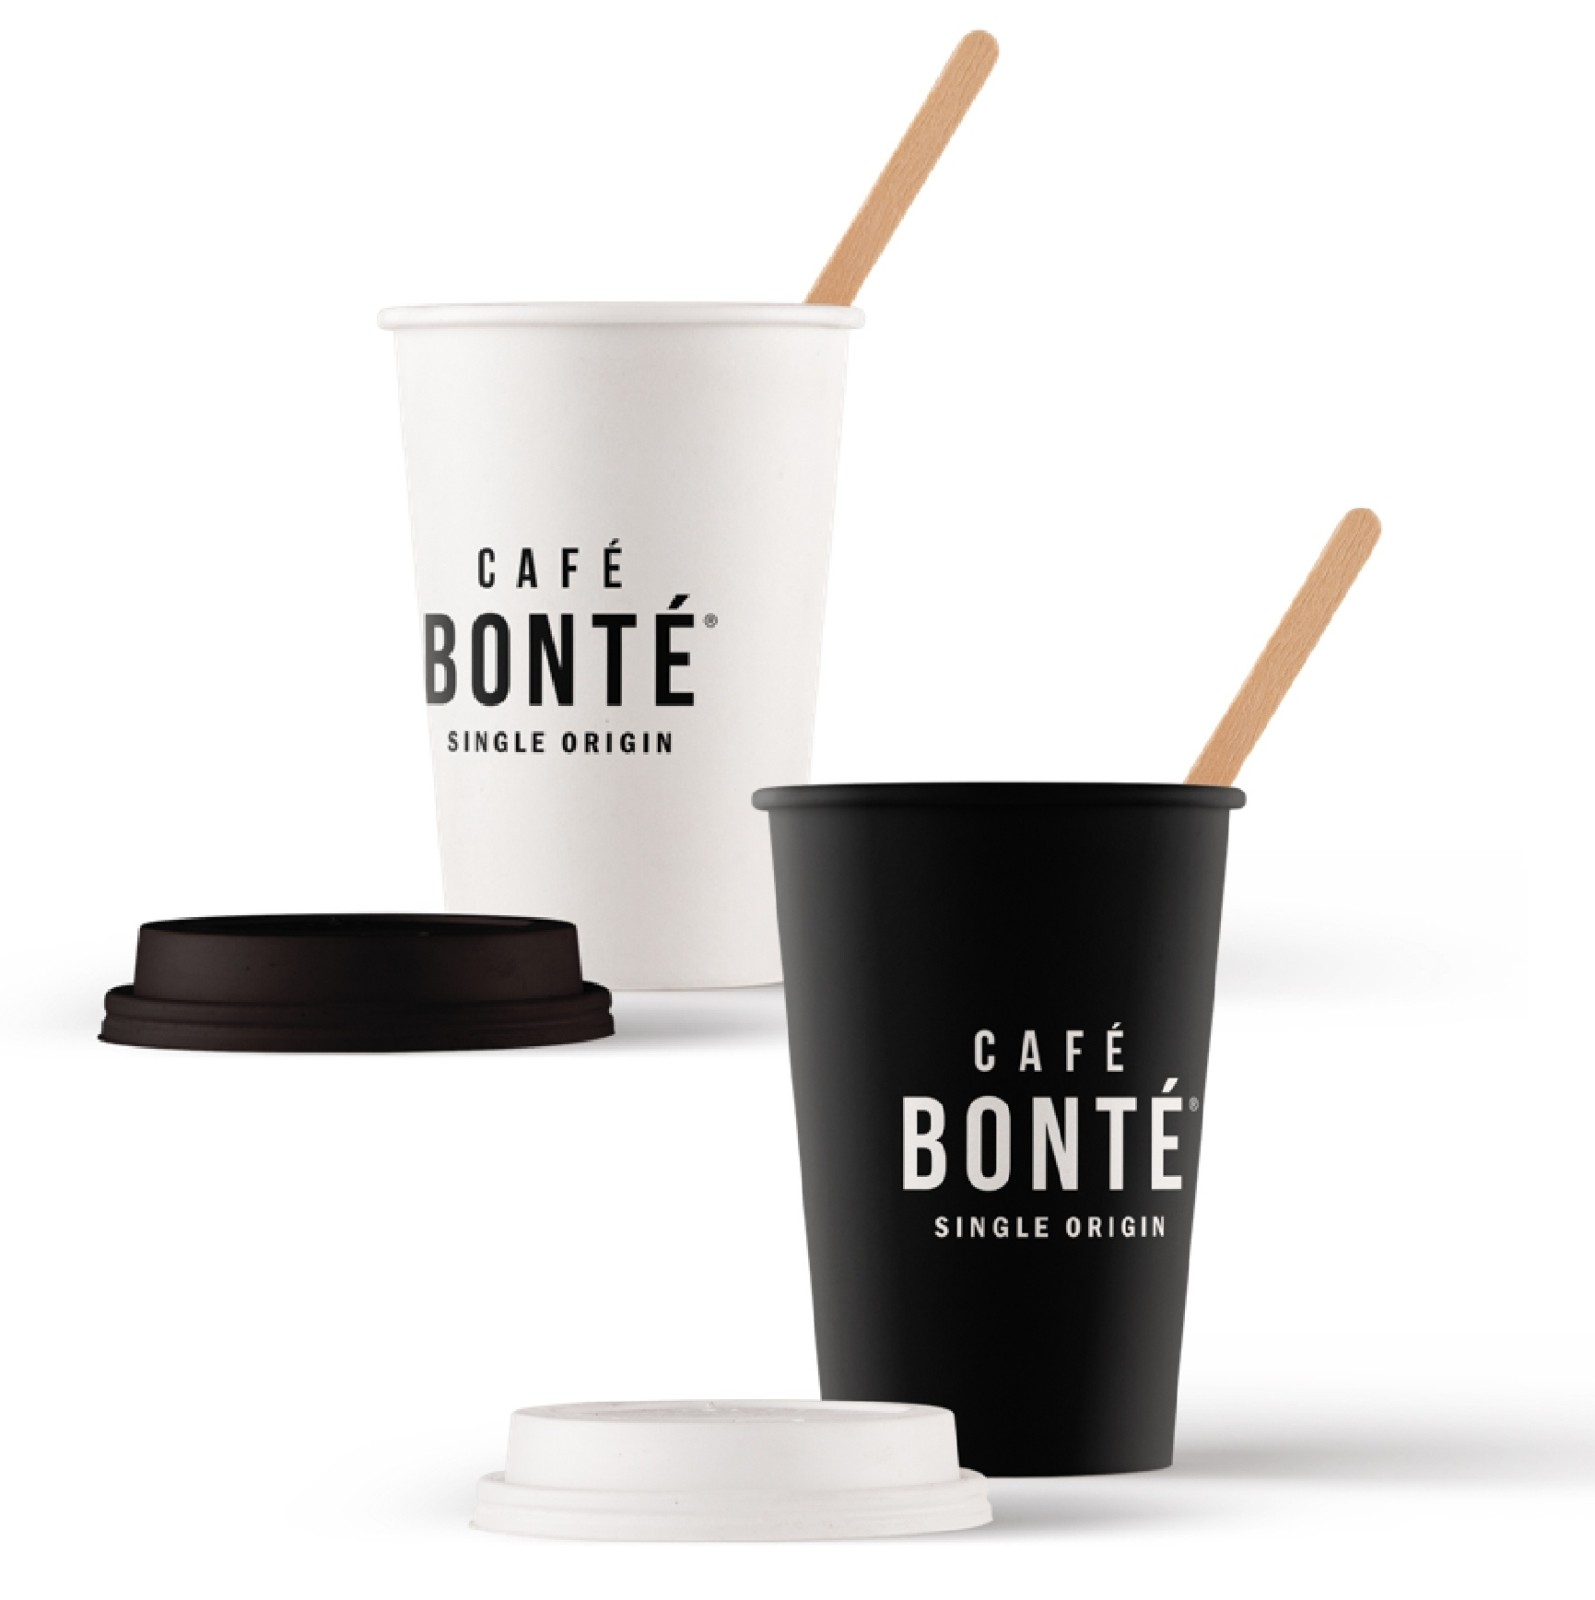 Cafe Bonte black and white takeout cups